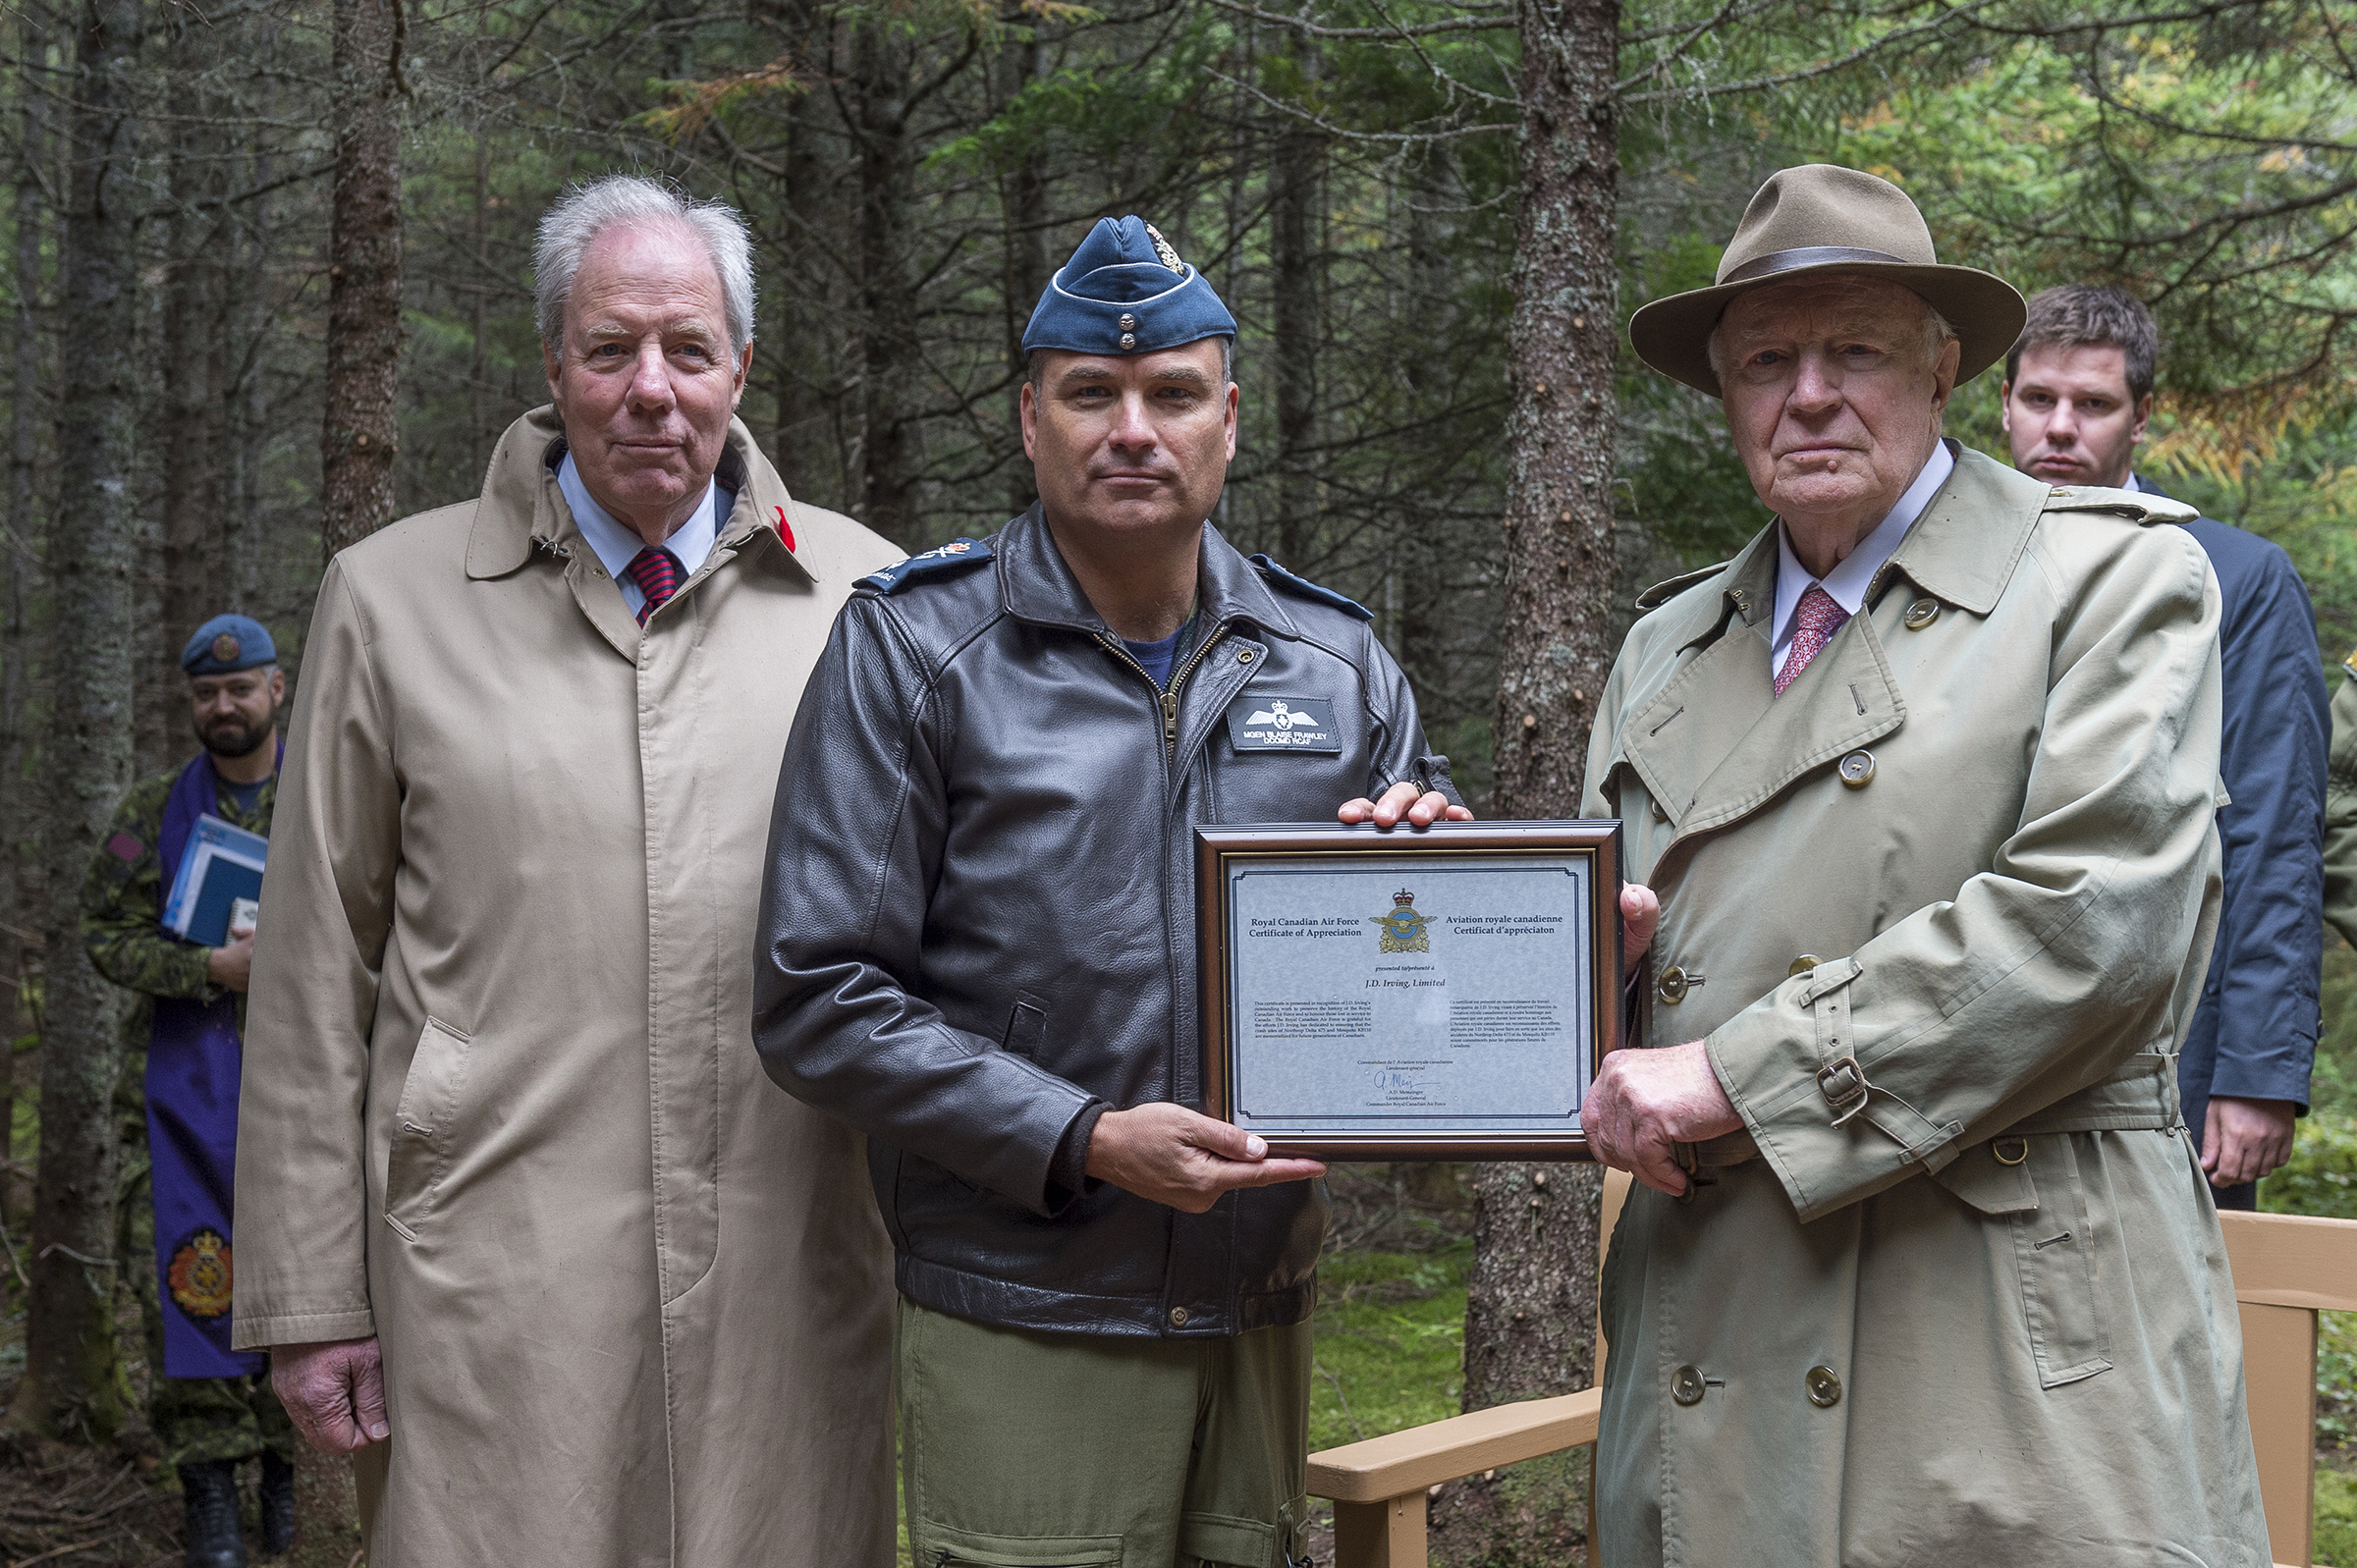 Major-General Blaise Frawley (centre) presents a certificate of appreciation to Mr. J.K. Irving (right) and Mr. Jim Irving of J.D Irving, Limited during the ceremony commemorating Warrant Officer Class 2 James Edward Doan and Corporal David Alexander Rennie who died on September 14, 1939, when their Northrop Delta aircraft crashed near Plaster Rock, New Brunswick. PHOTO: Corporal Nicolas Alonso, GN02-2019-0949-020